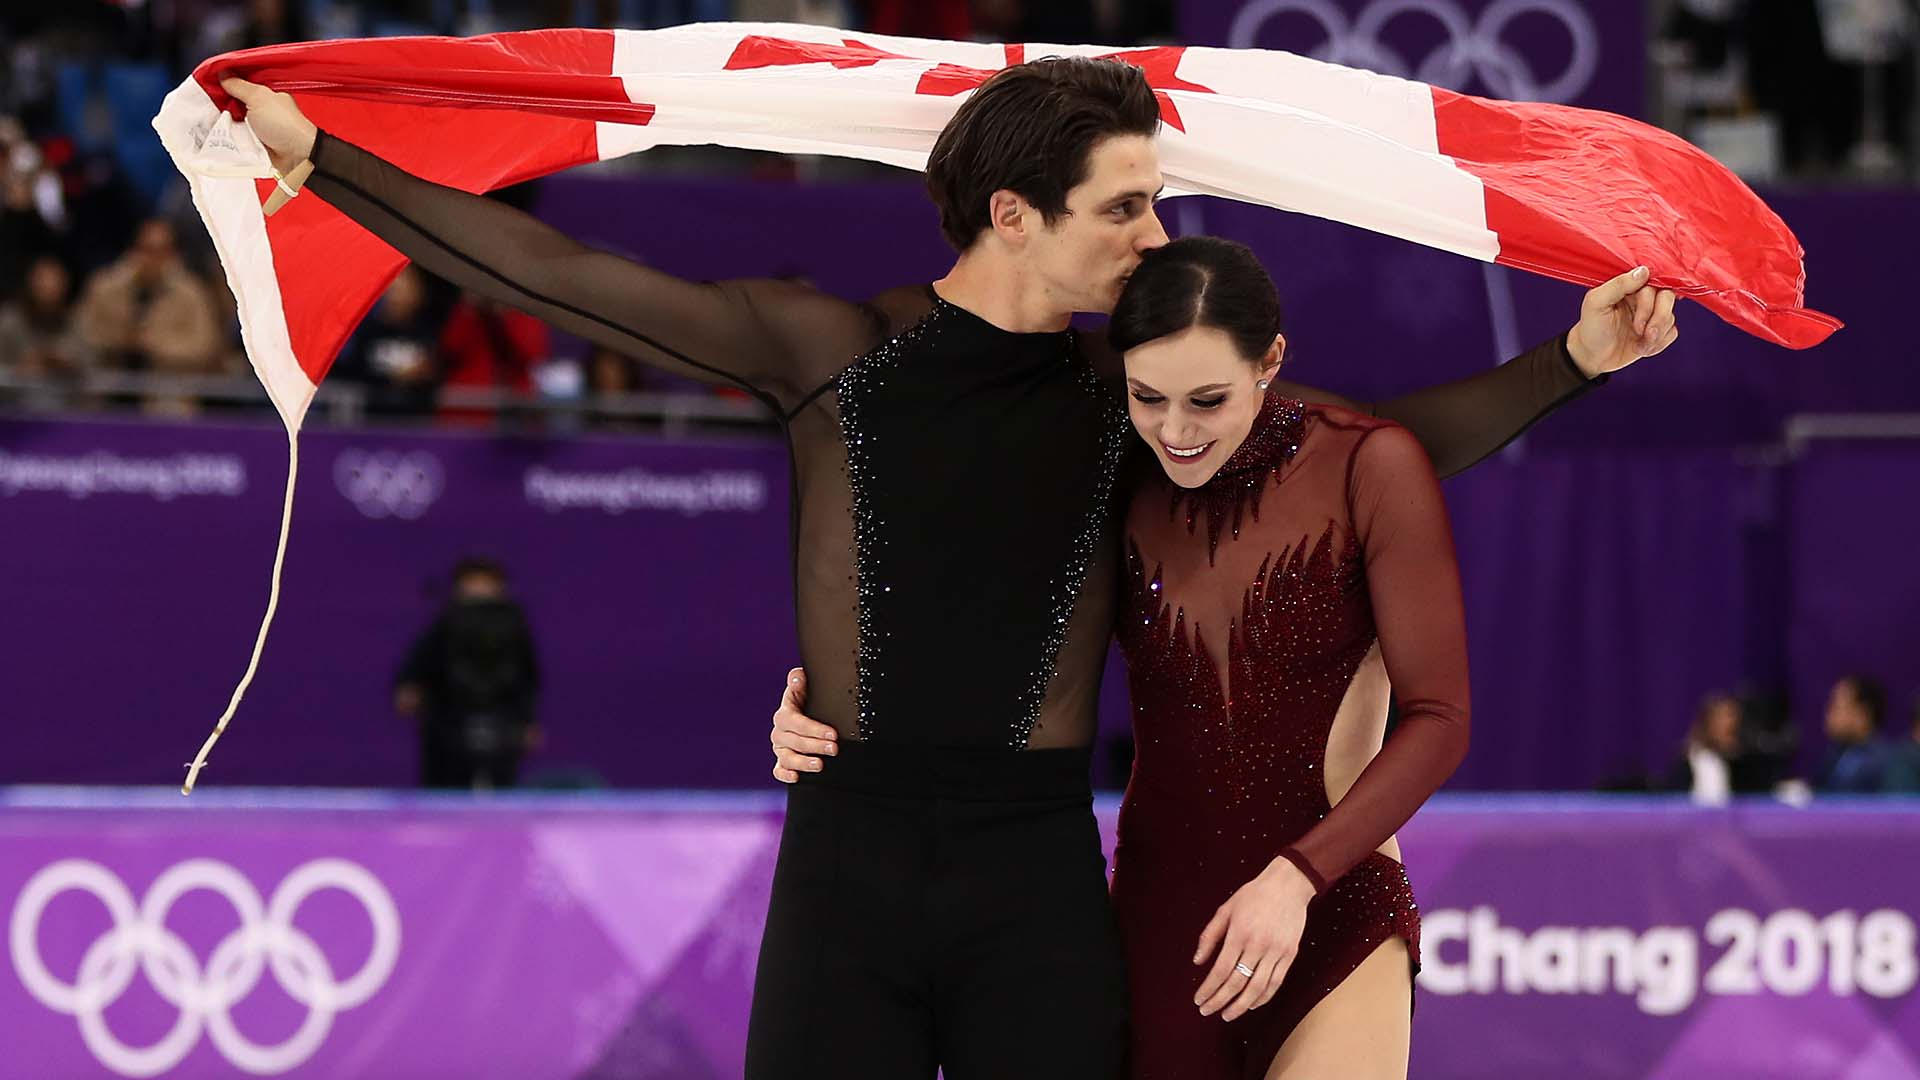 Virtue, Moir tell Ellen DeGeneres they're 'definitely' not a couple